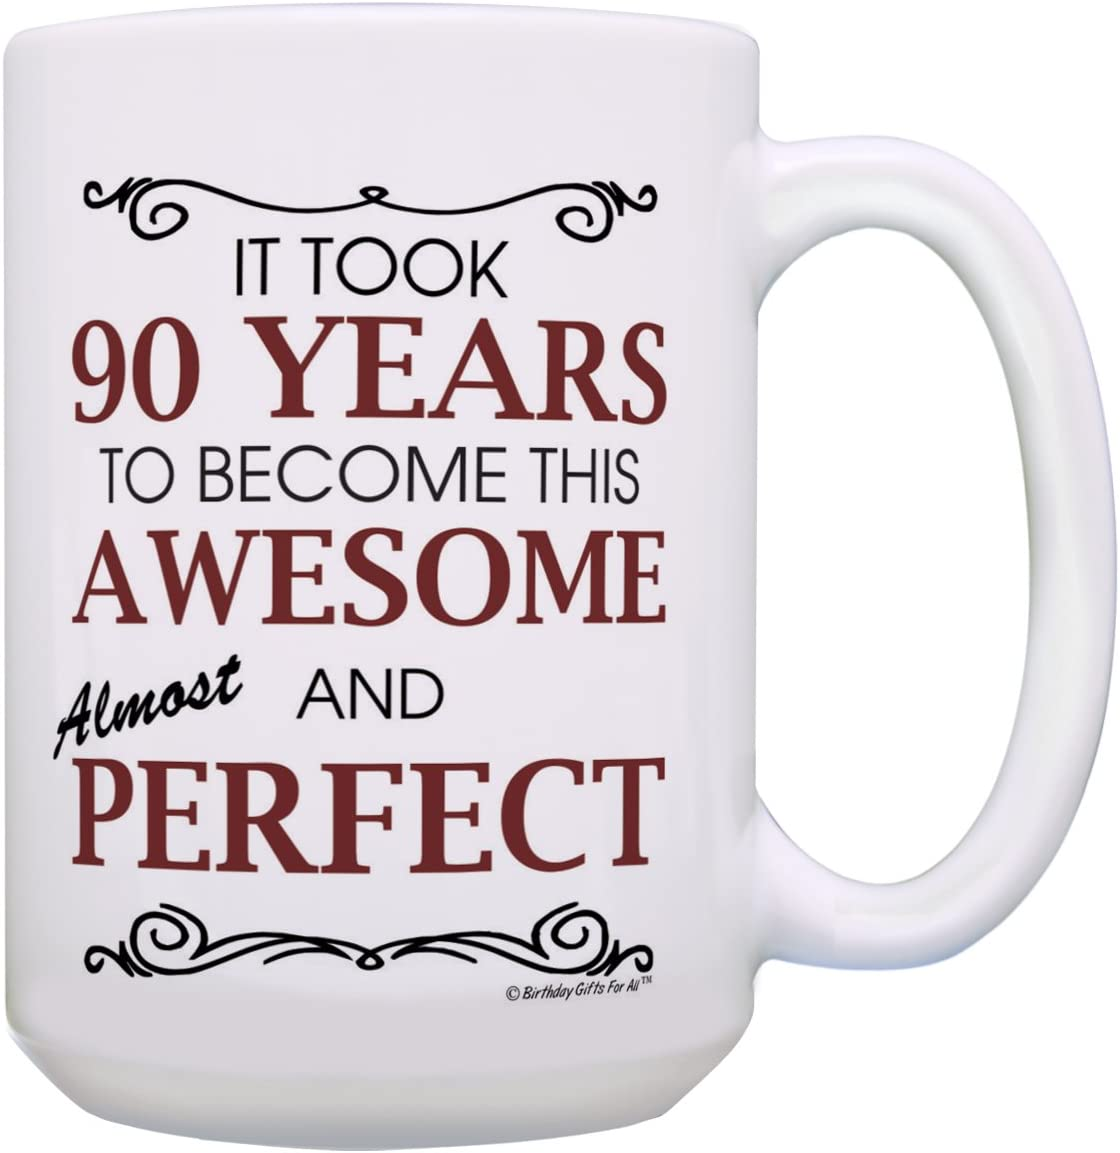 90th Birthday Gifts for All G 90 Choice Ranking TOP10 Mug Awesome Years